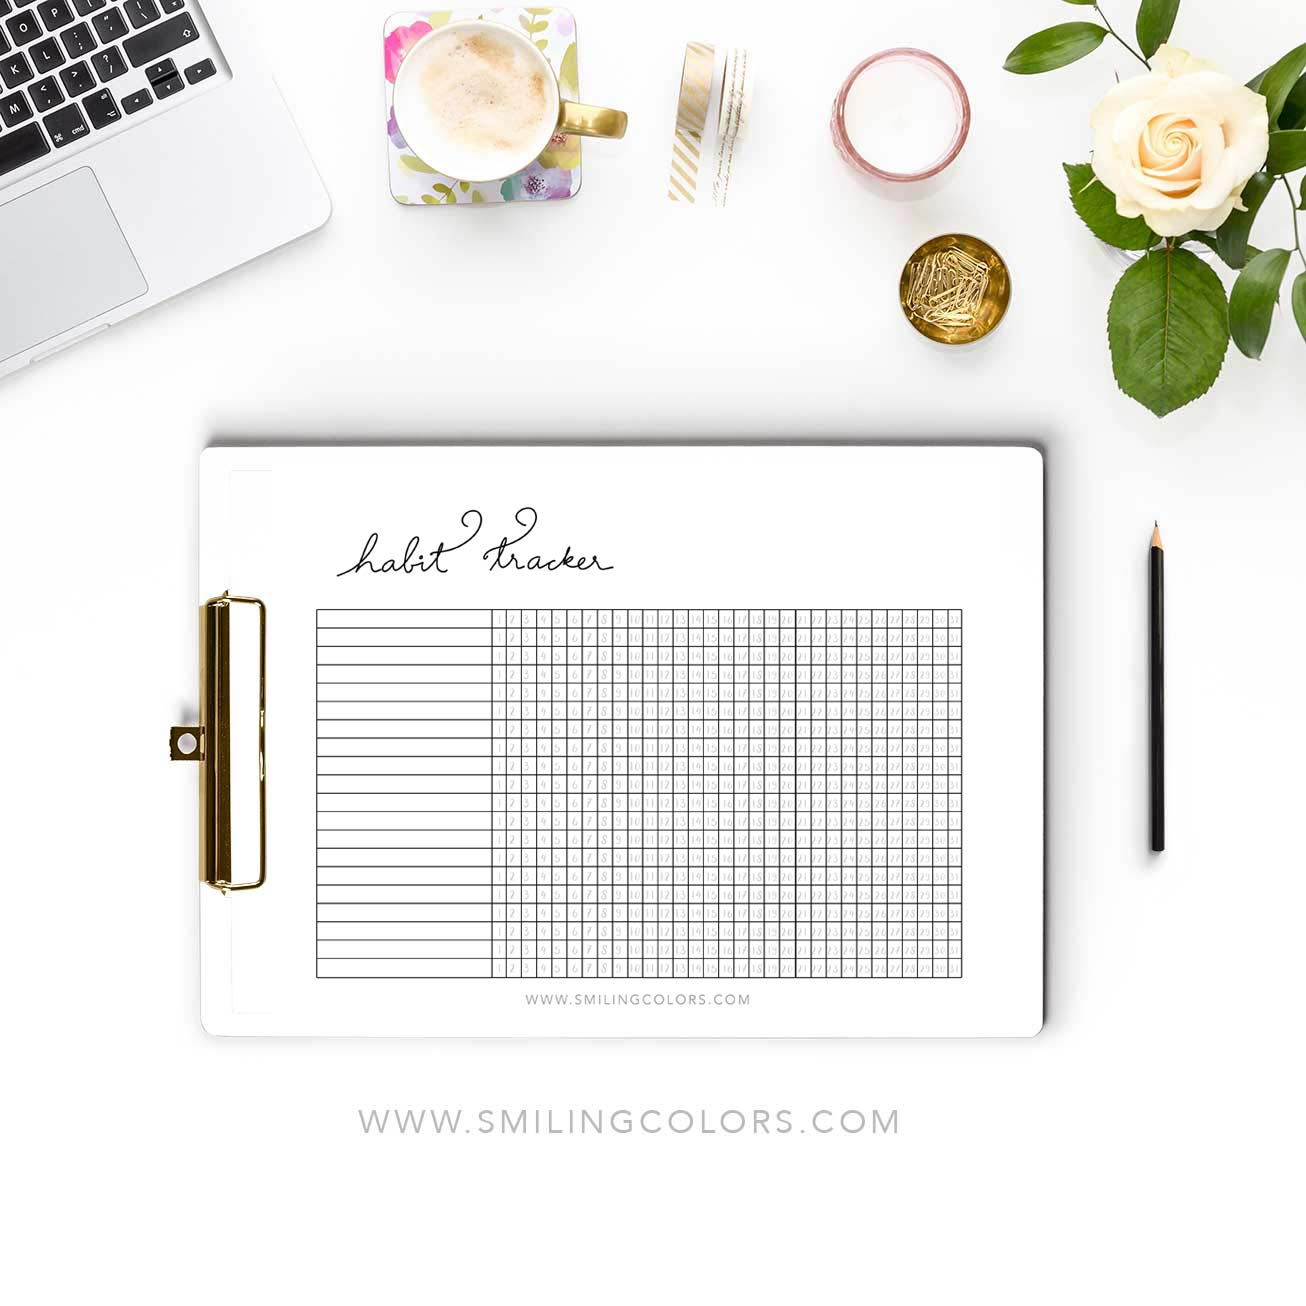 Monthly Habit Tracker Printable For Your Planners And Goal Tracking